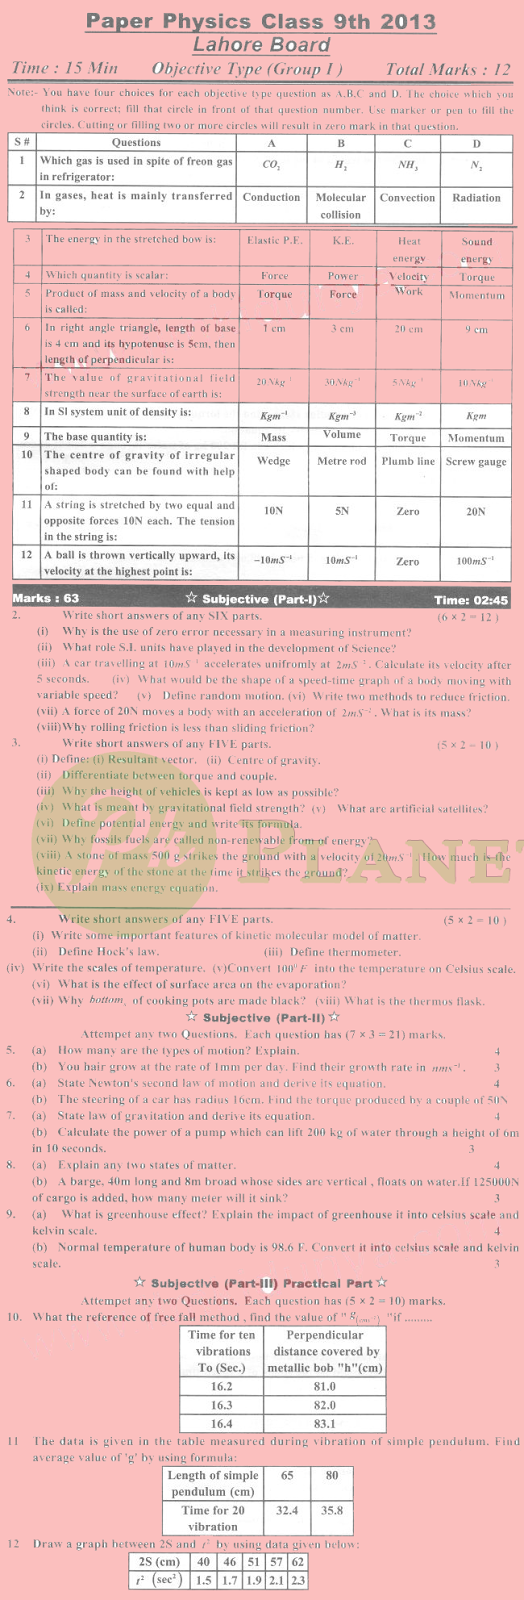 Past Papers of 9th Class Lahore Board 2013 Physics in English